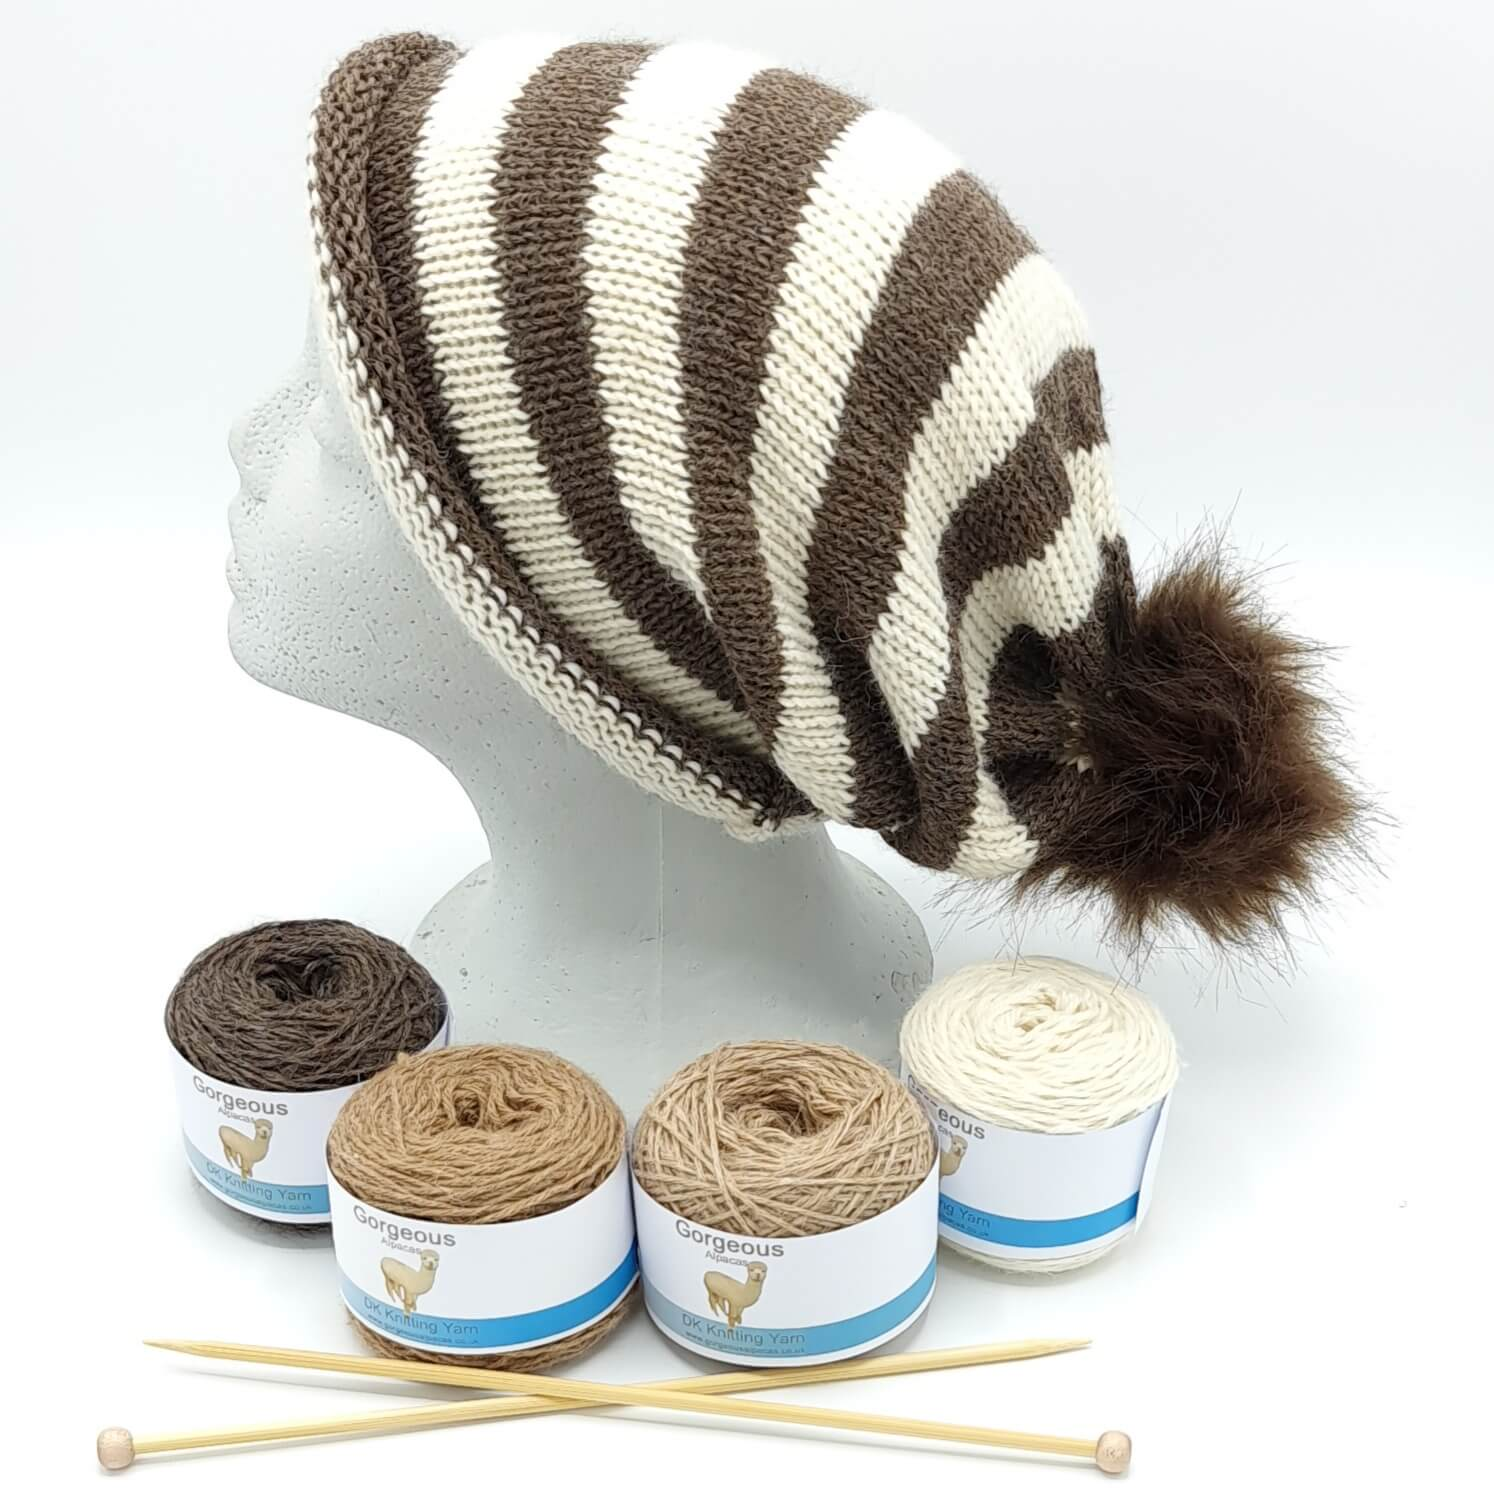 Knit Kit - Striped Easy to Knit + - Gorgeous Alpacas